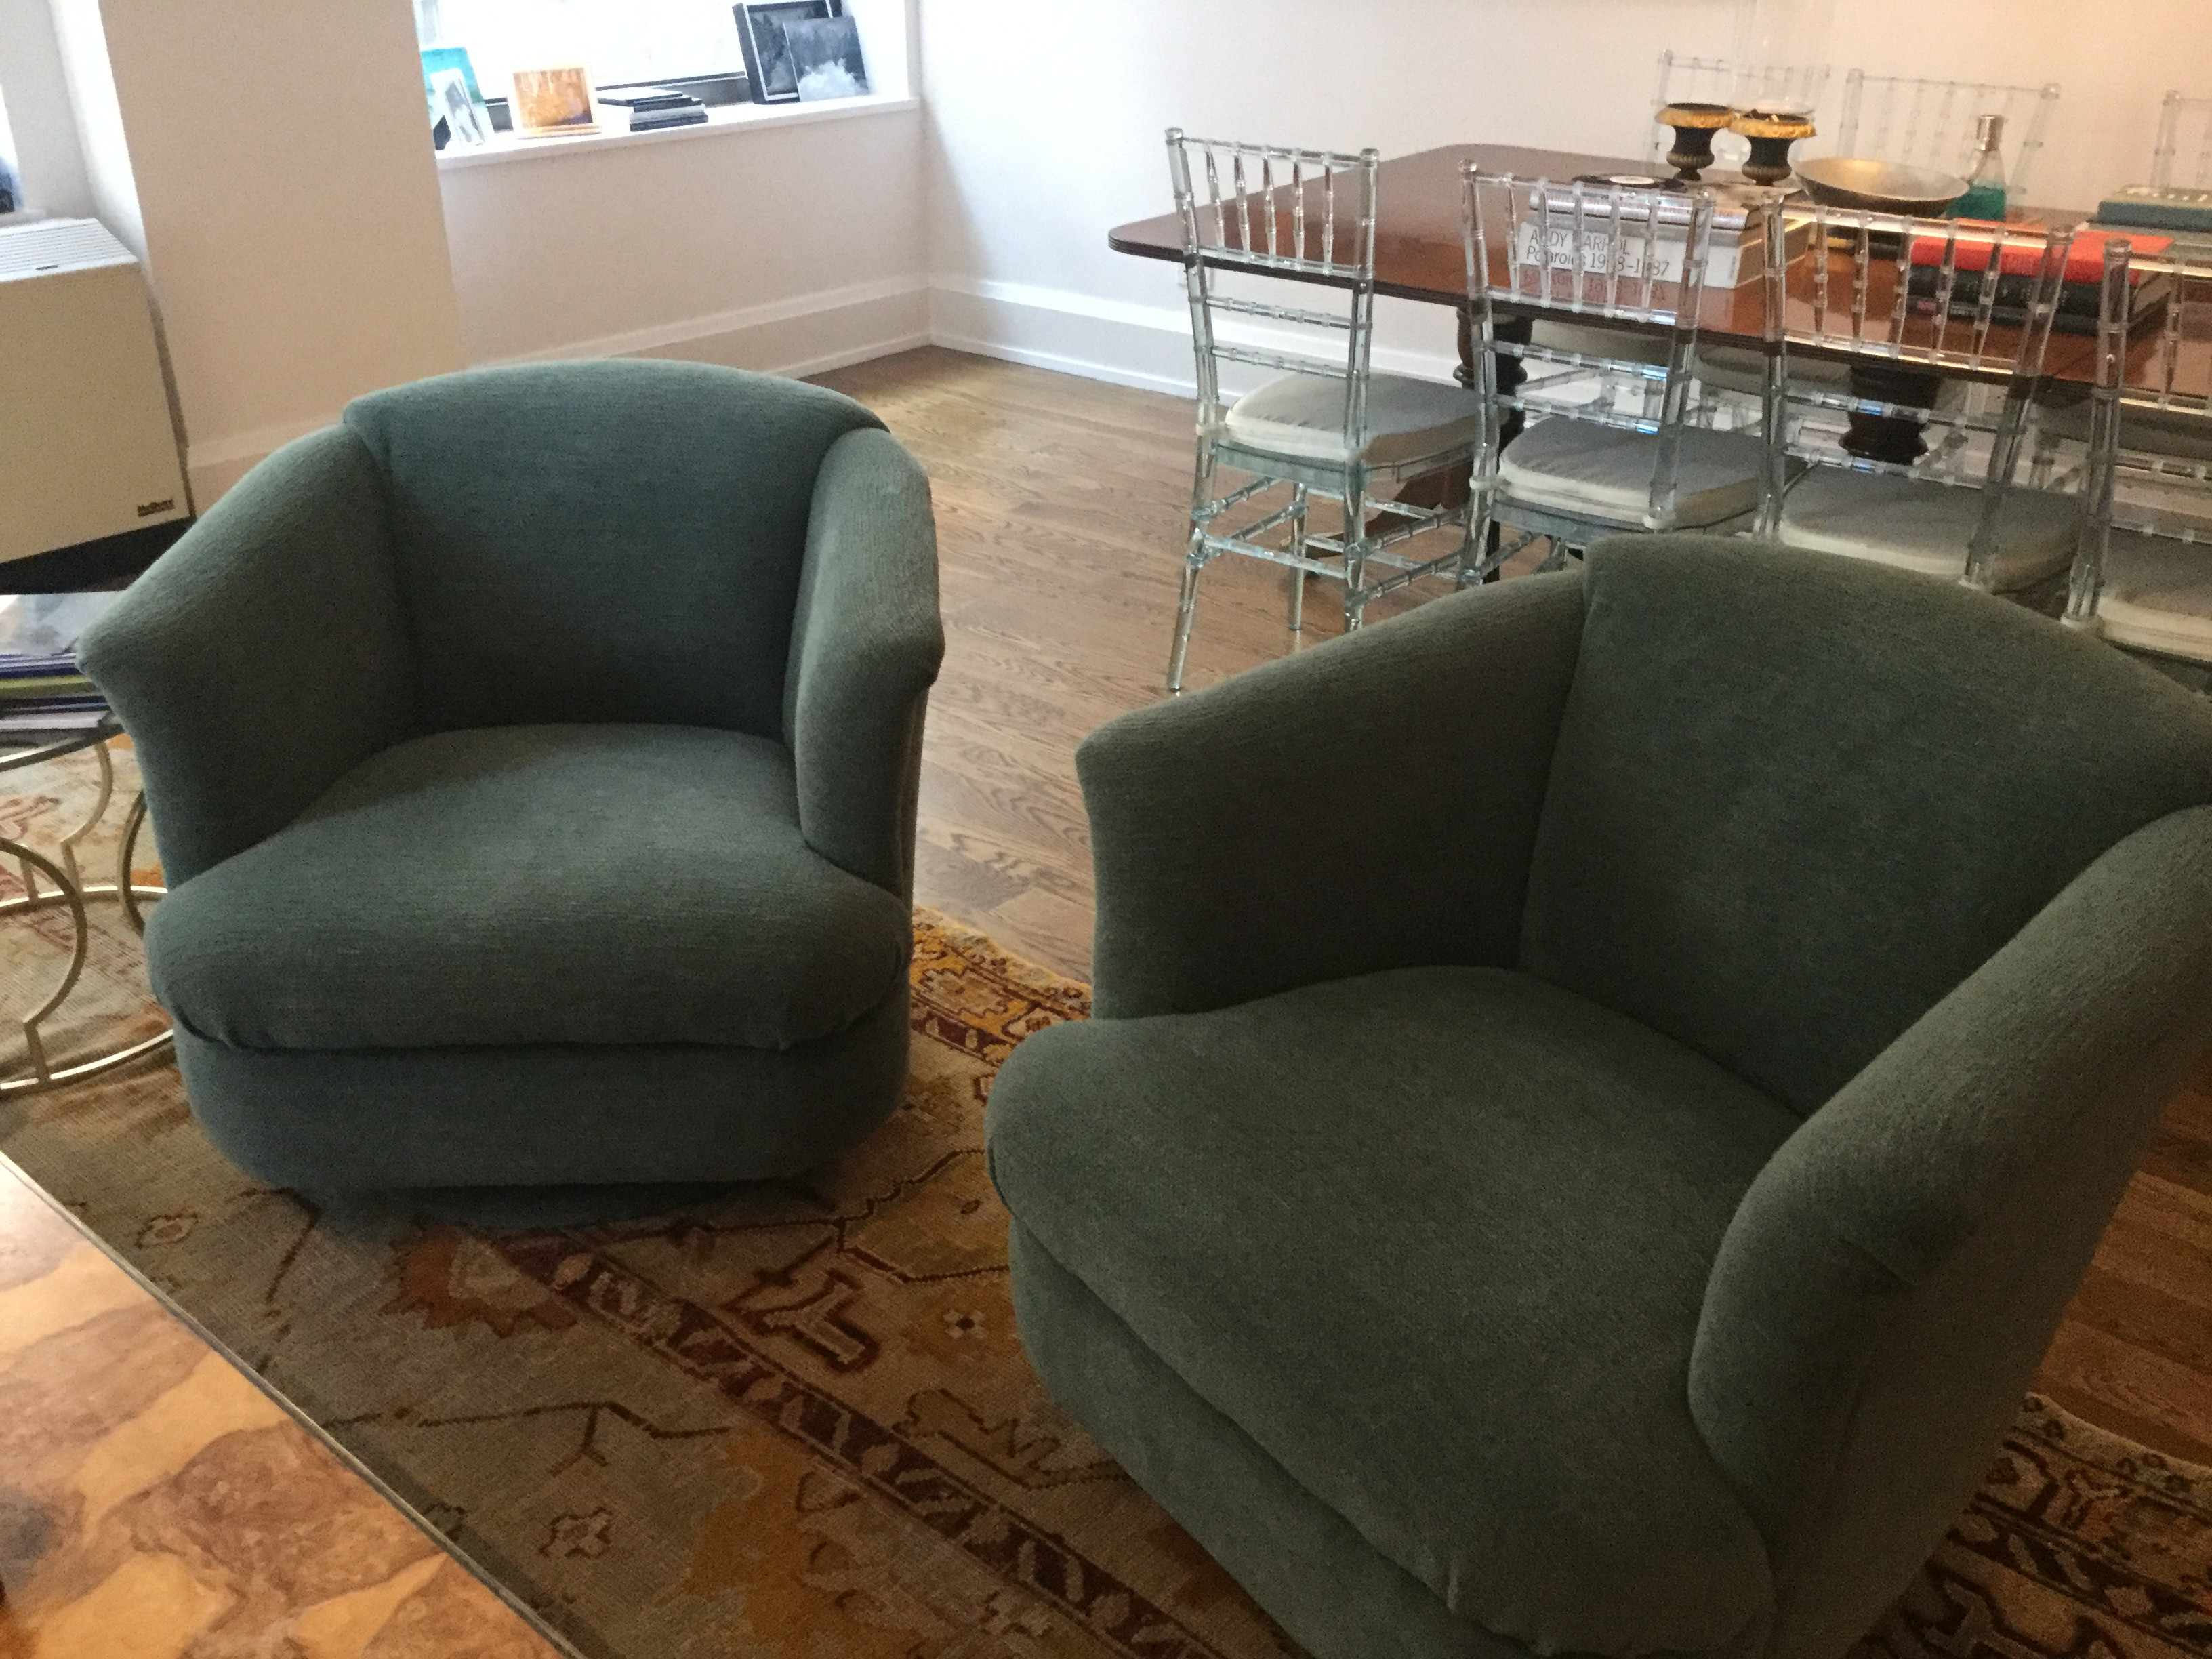 Upholstered Swivel Chairs